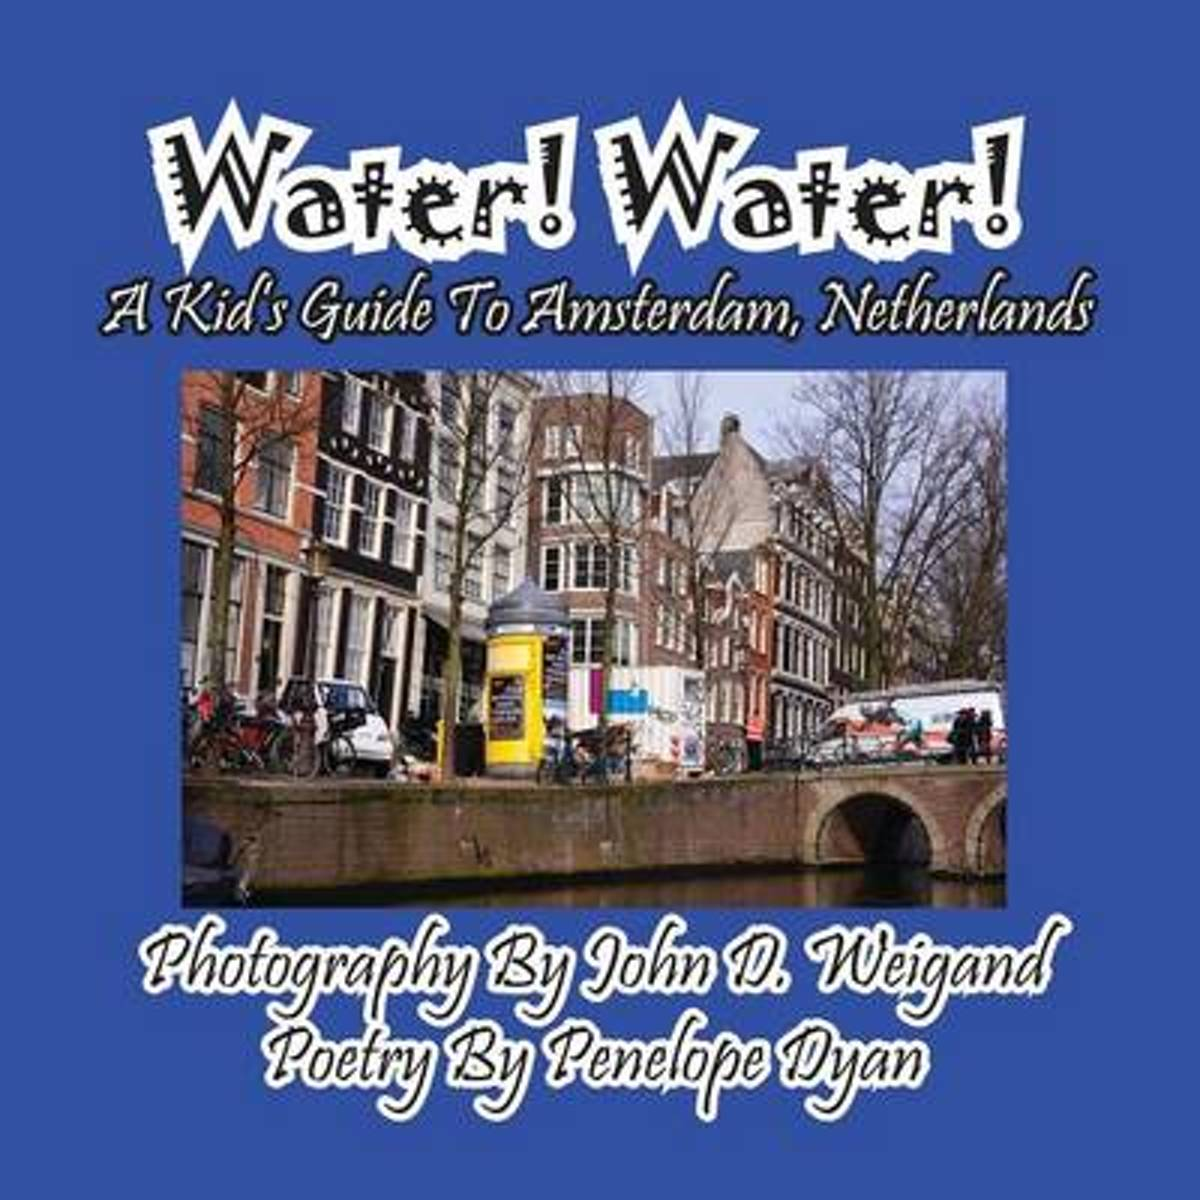 Water! Water! a Kid's Guide to Amsterdam. Netherlands